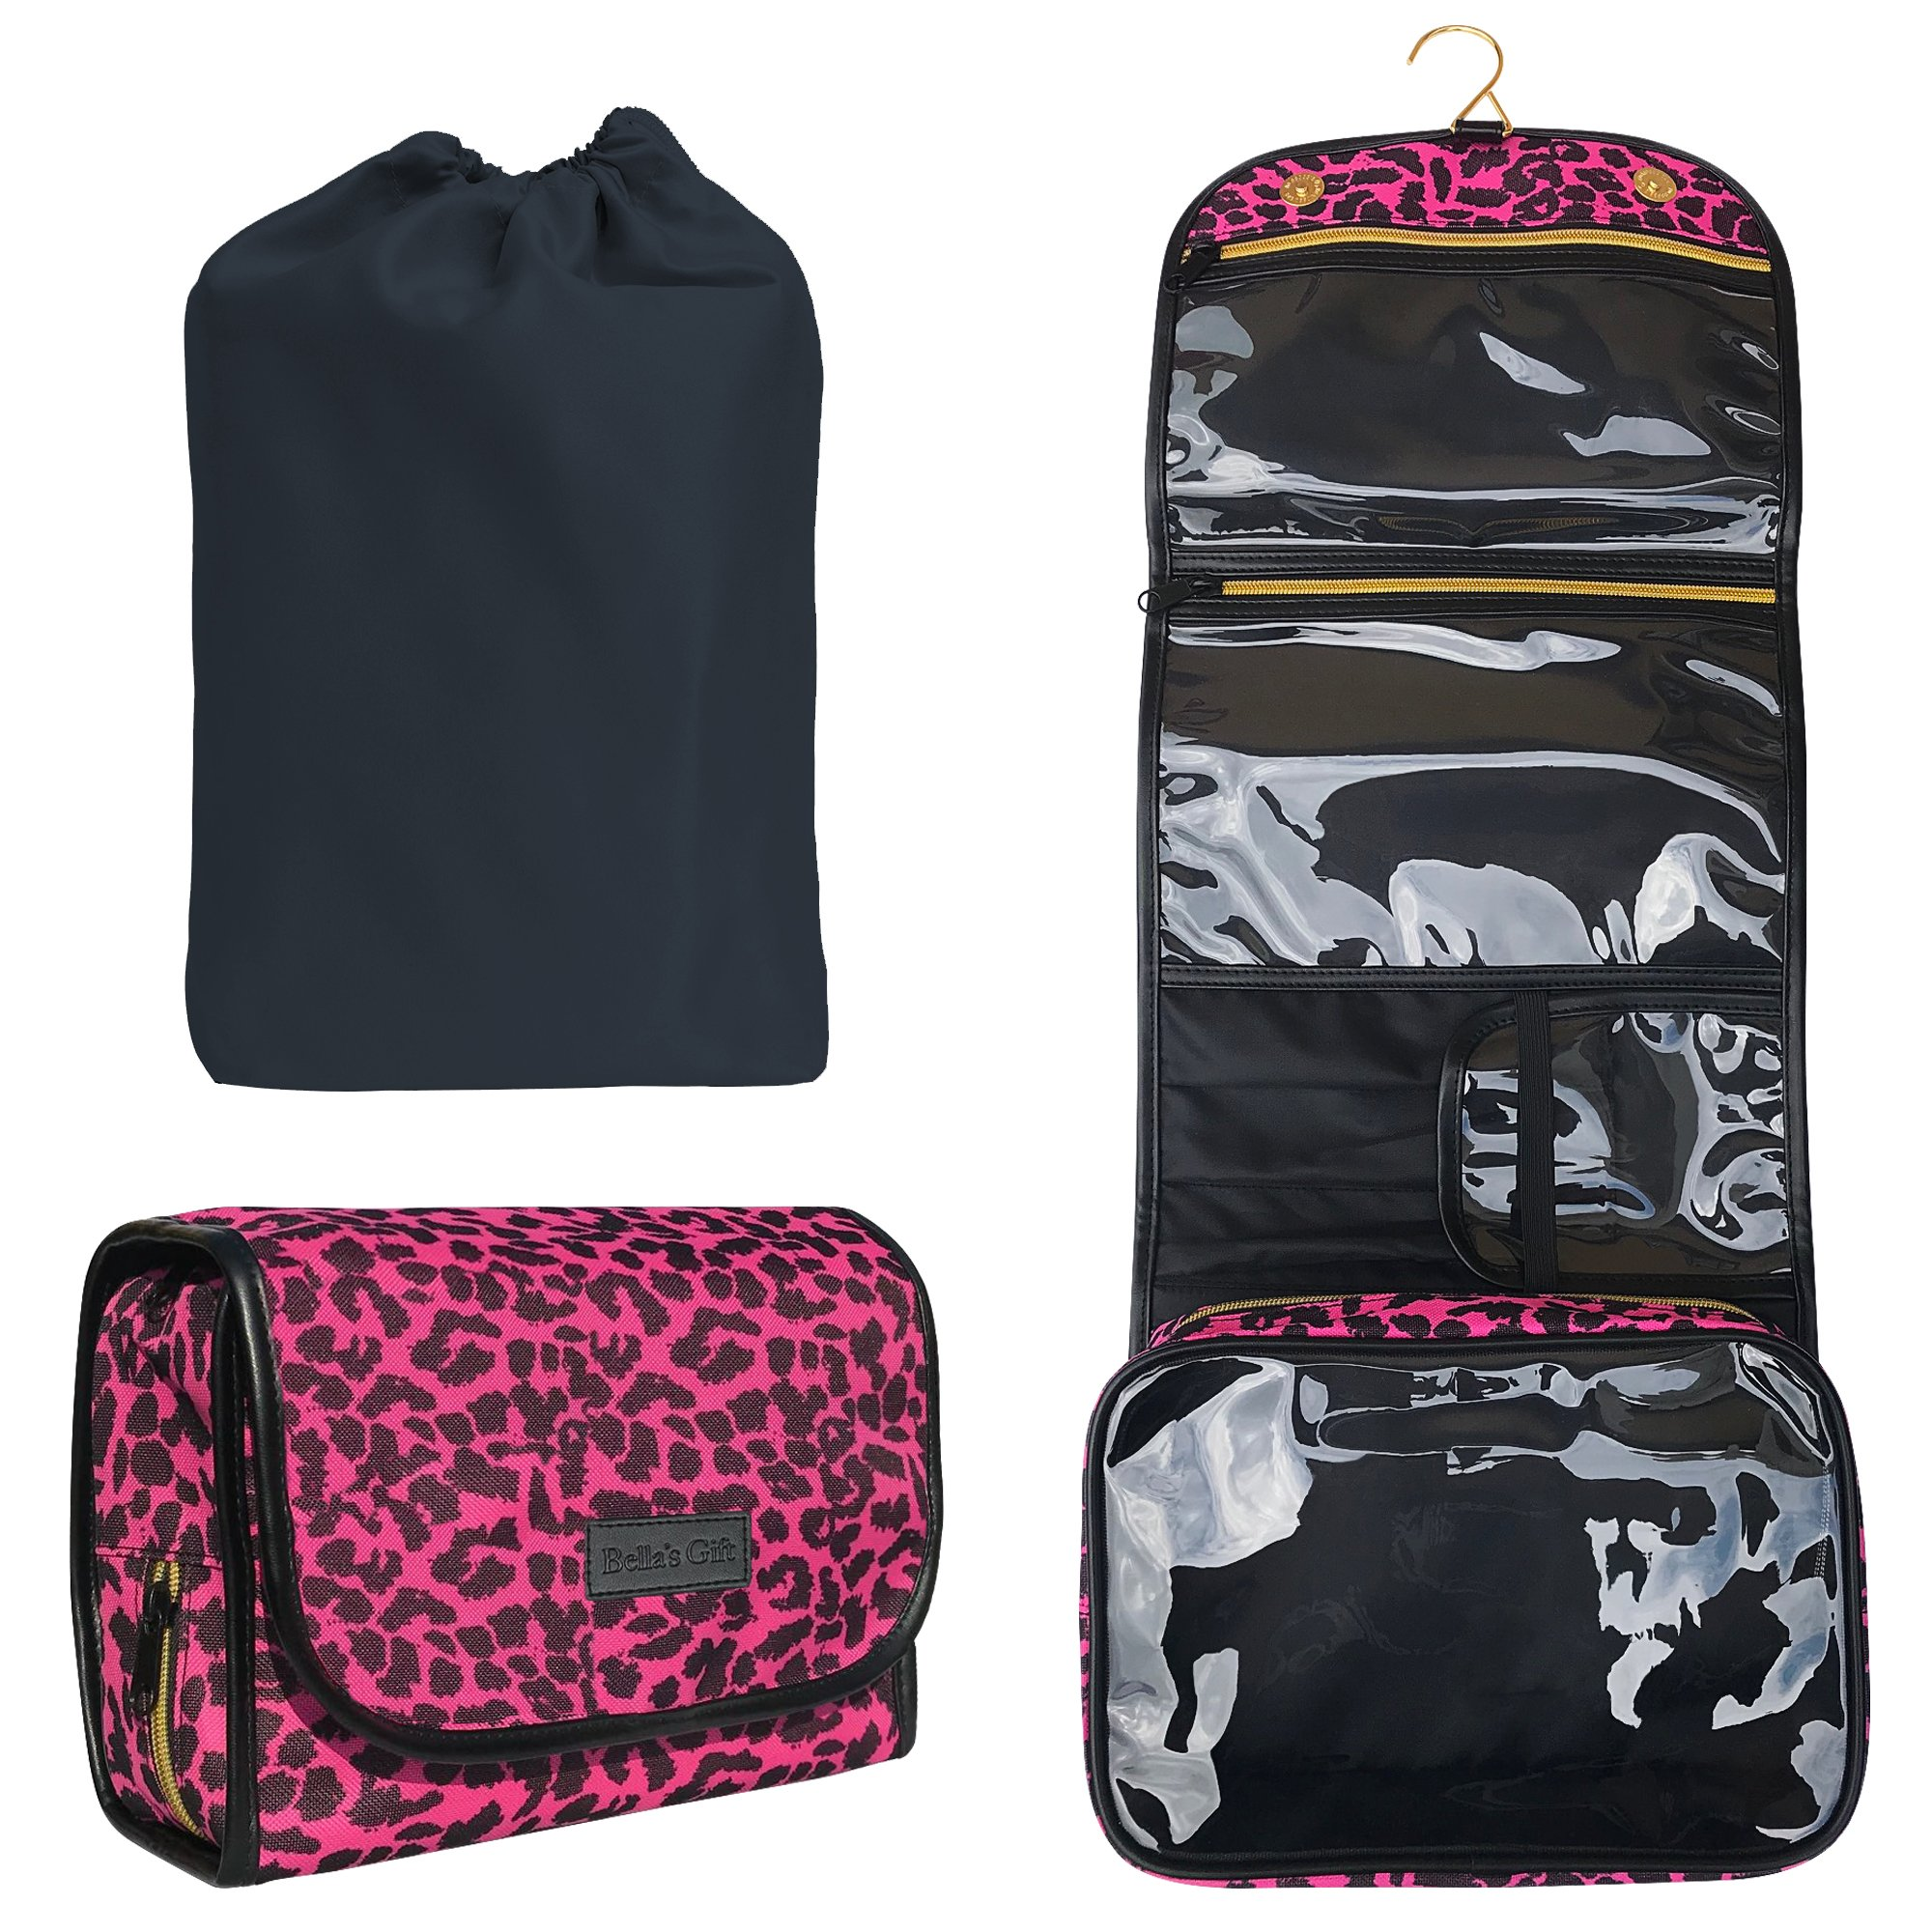 9cd4c78a2bd0 Hanging Toiletry Bag - Travel Kit for Women - Compact Makeup Case - Cosmetic  Essentials Pouch